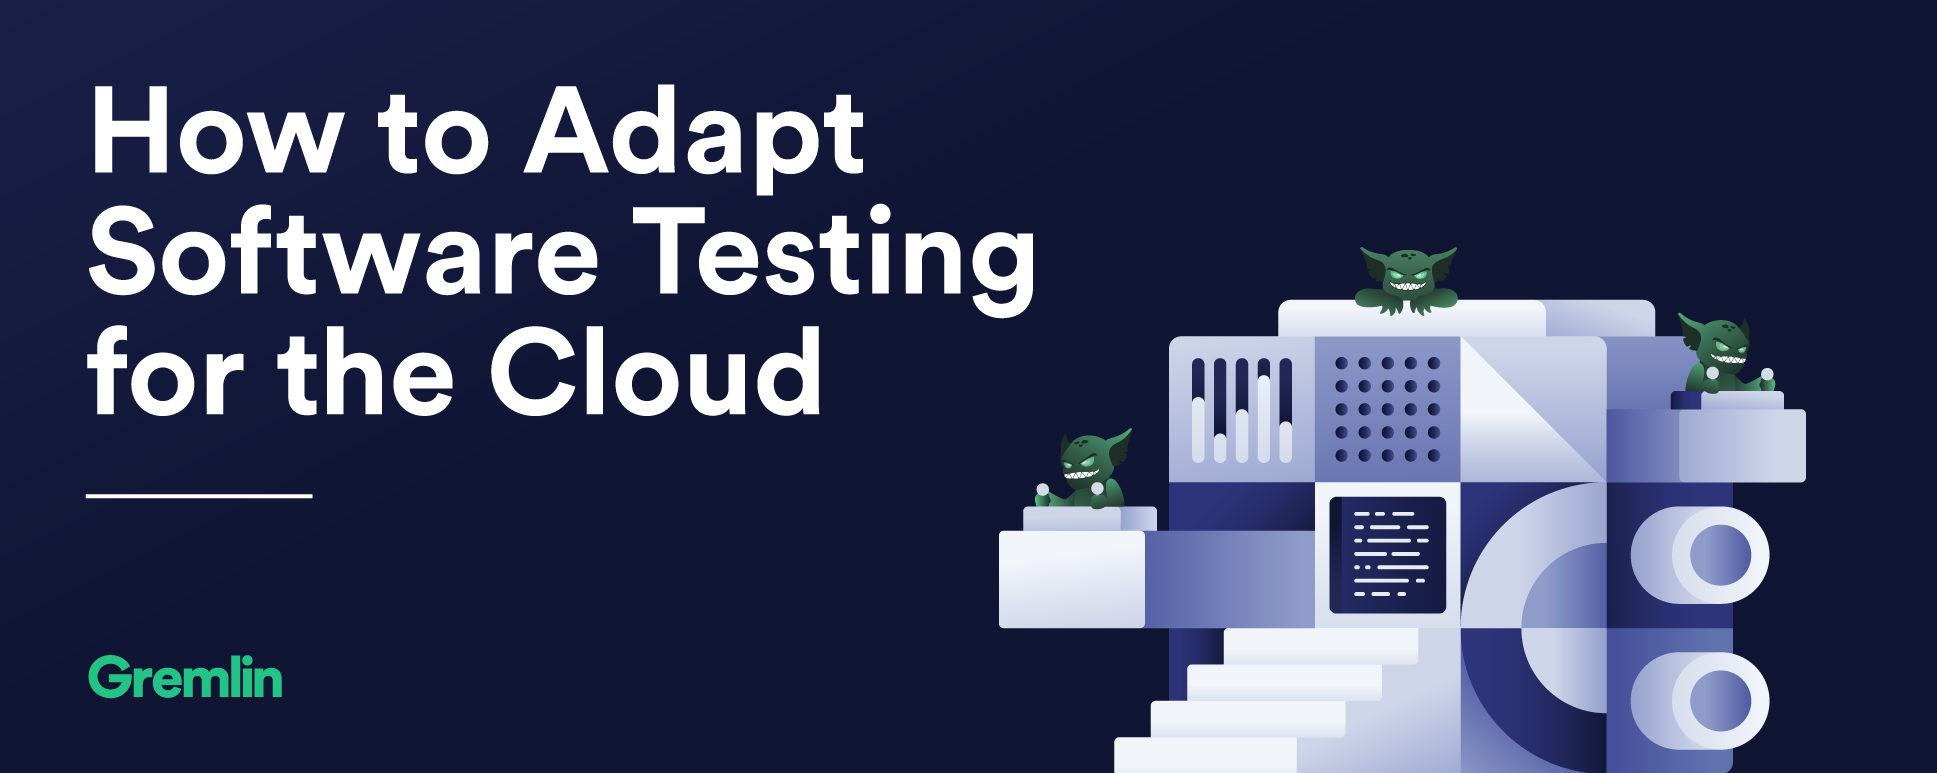 How to adapt software testing for the cloud